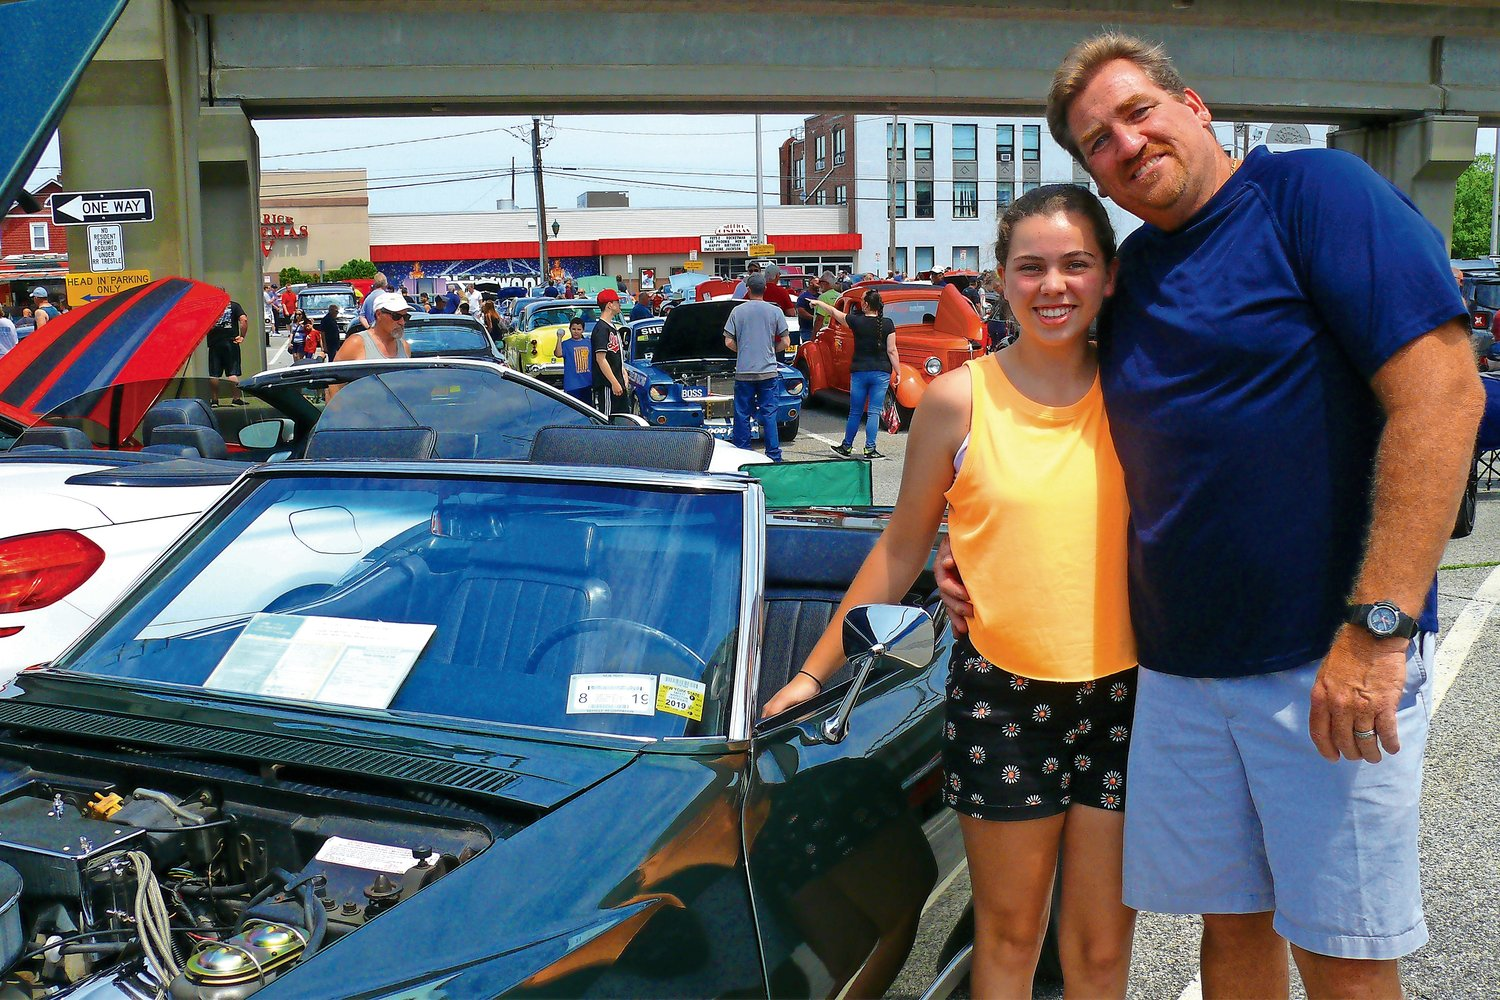 Father-daughter duo Grace and Thomas Toner showed off their Chevrolet Corvettes at the Father's Day car show at the Merrick train station. Their cars were among hundreds at the show.